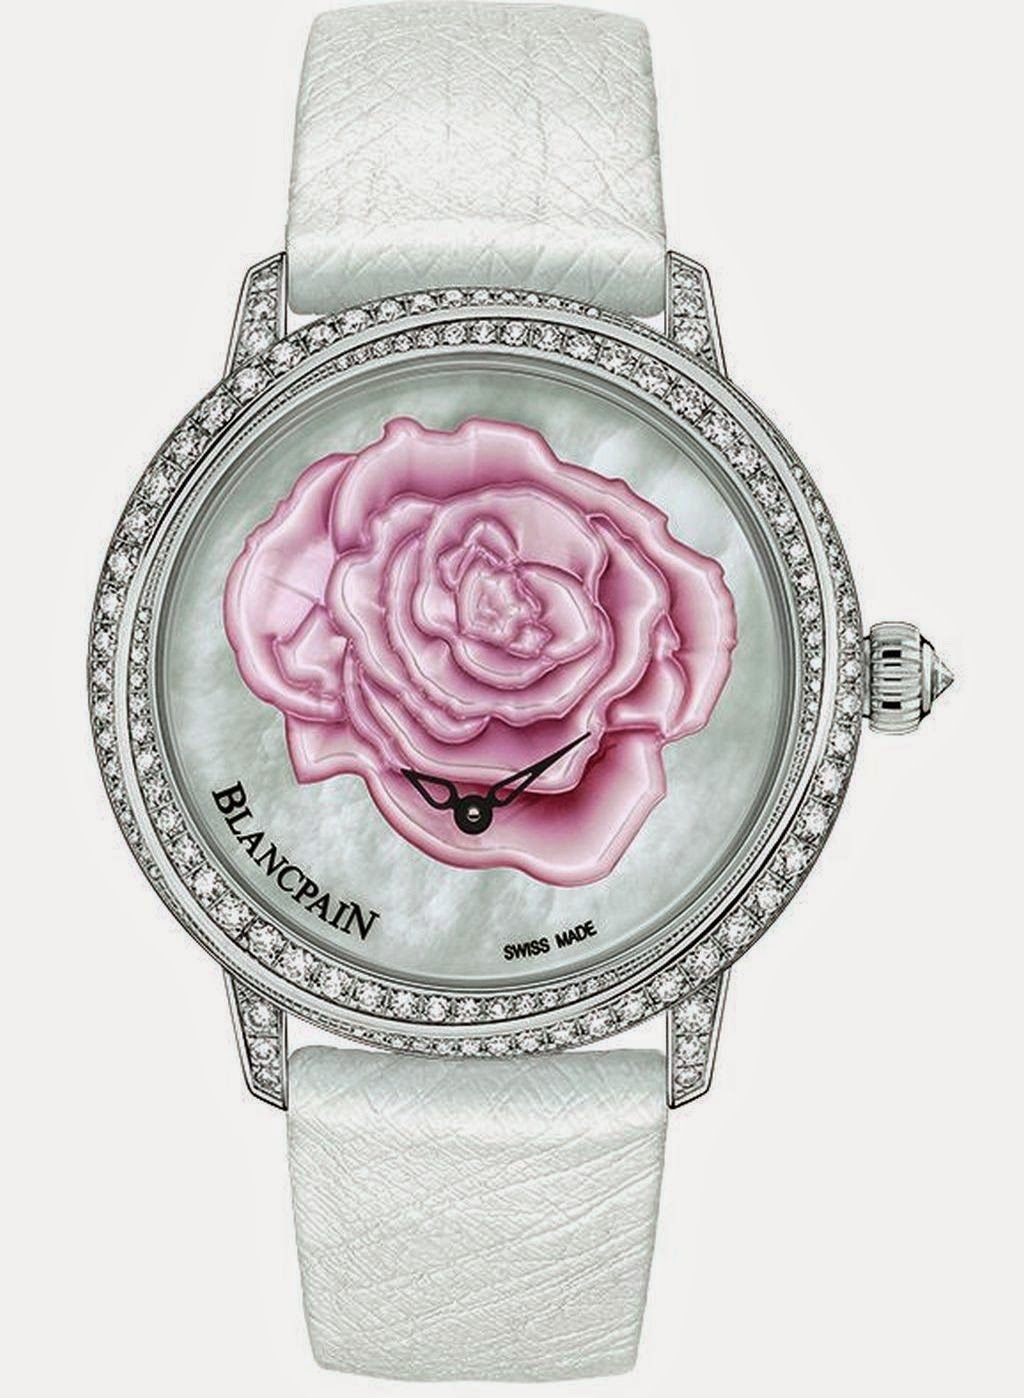 Blancpain Saint Valentine's Day 2015 replica watch